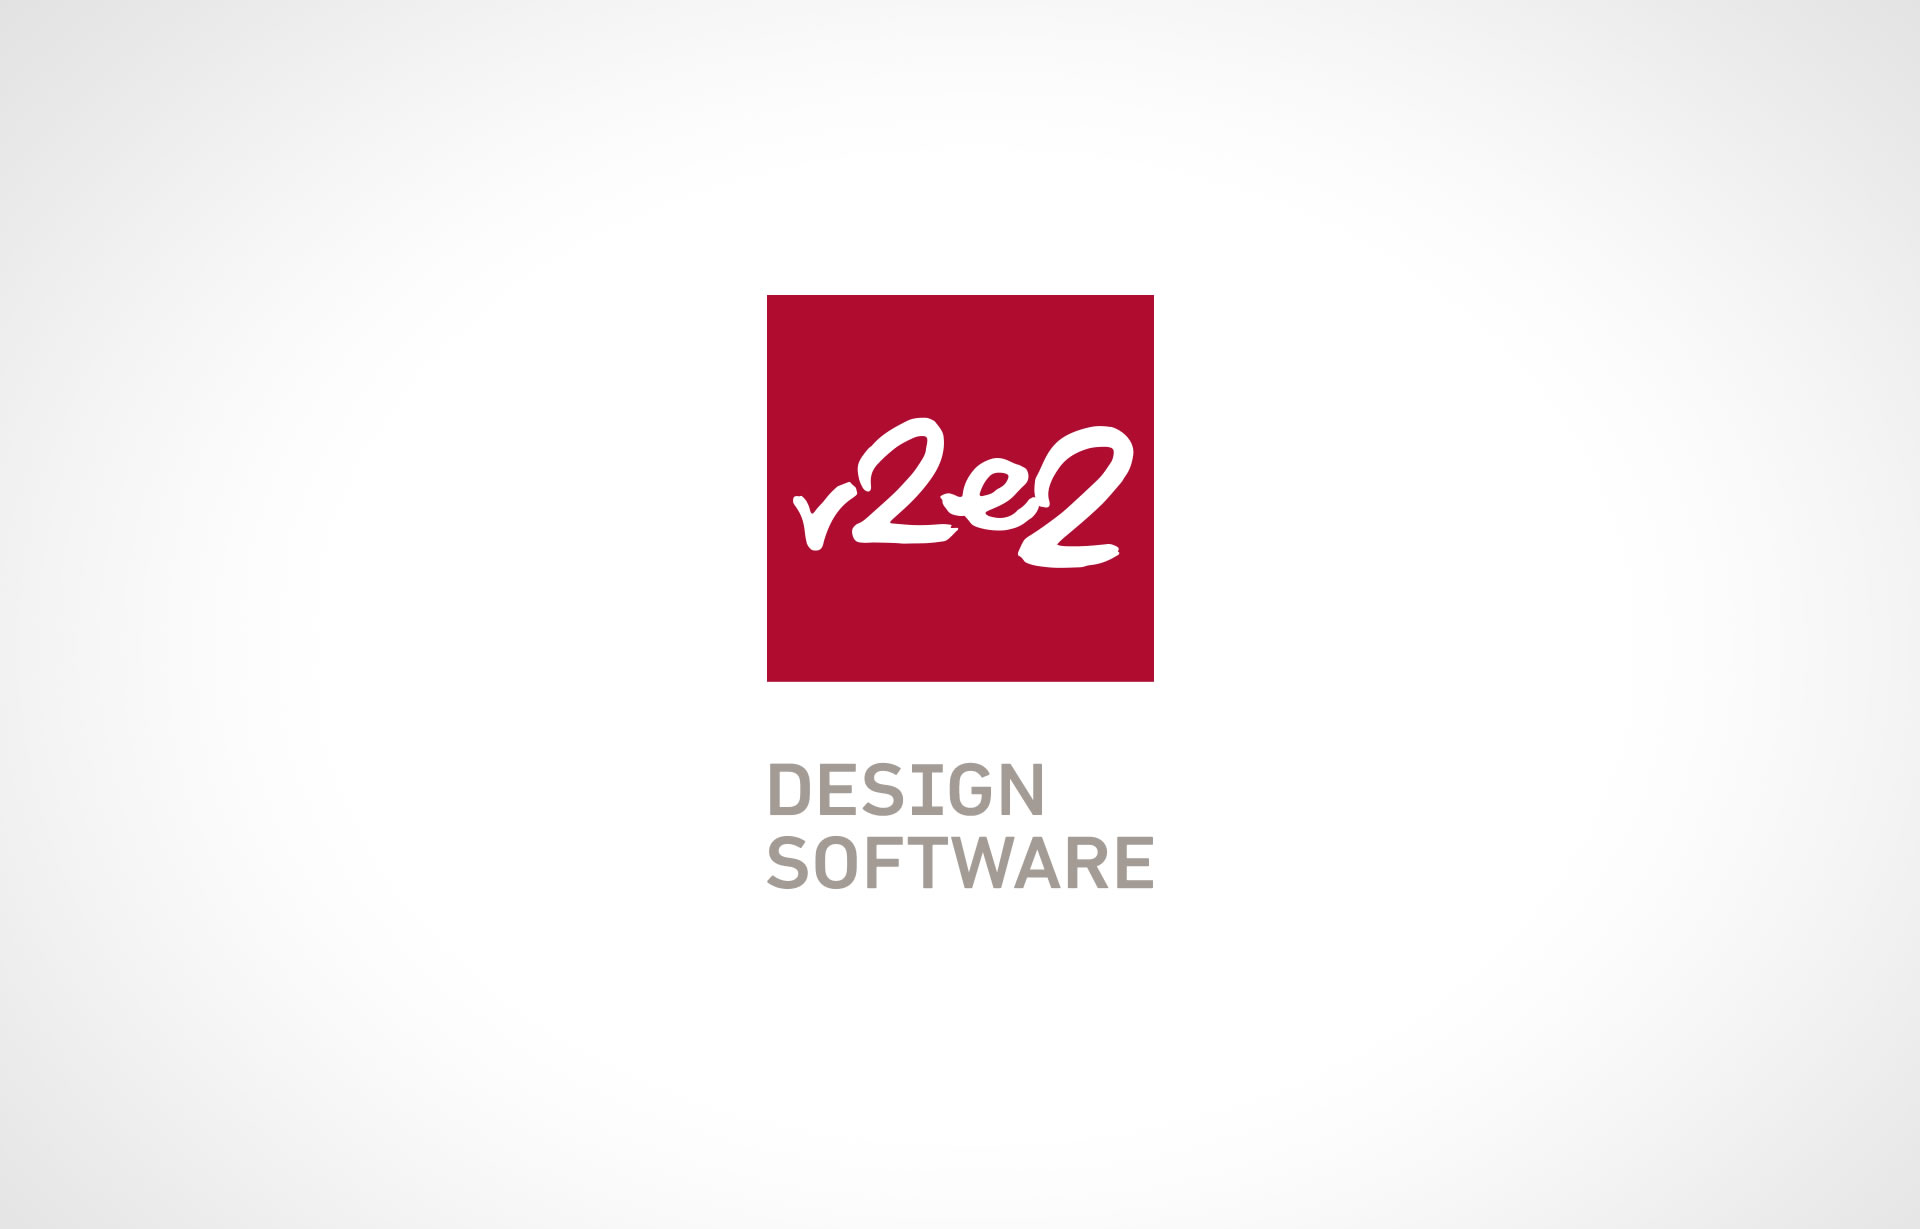 r2e2 design software logo